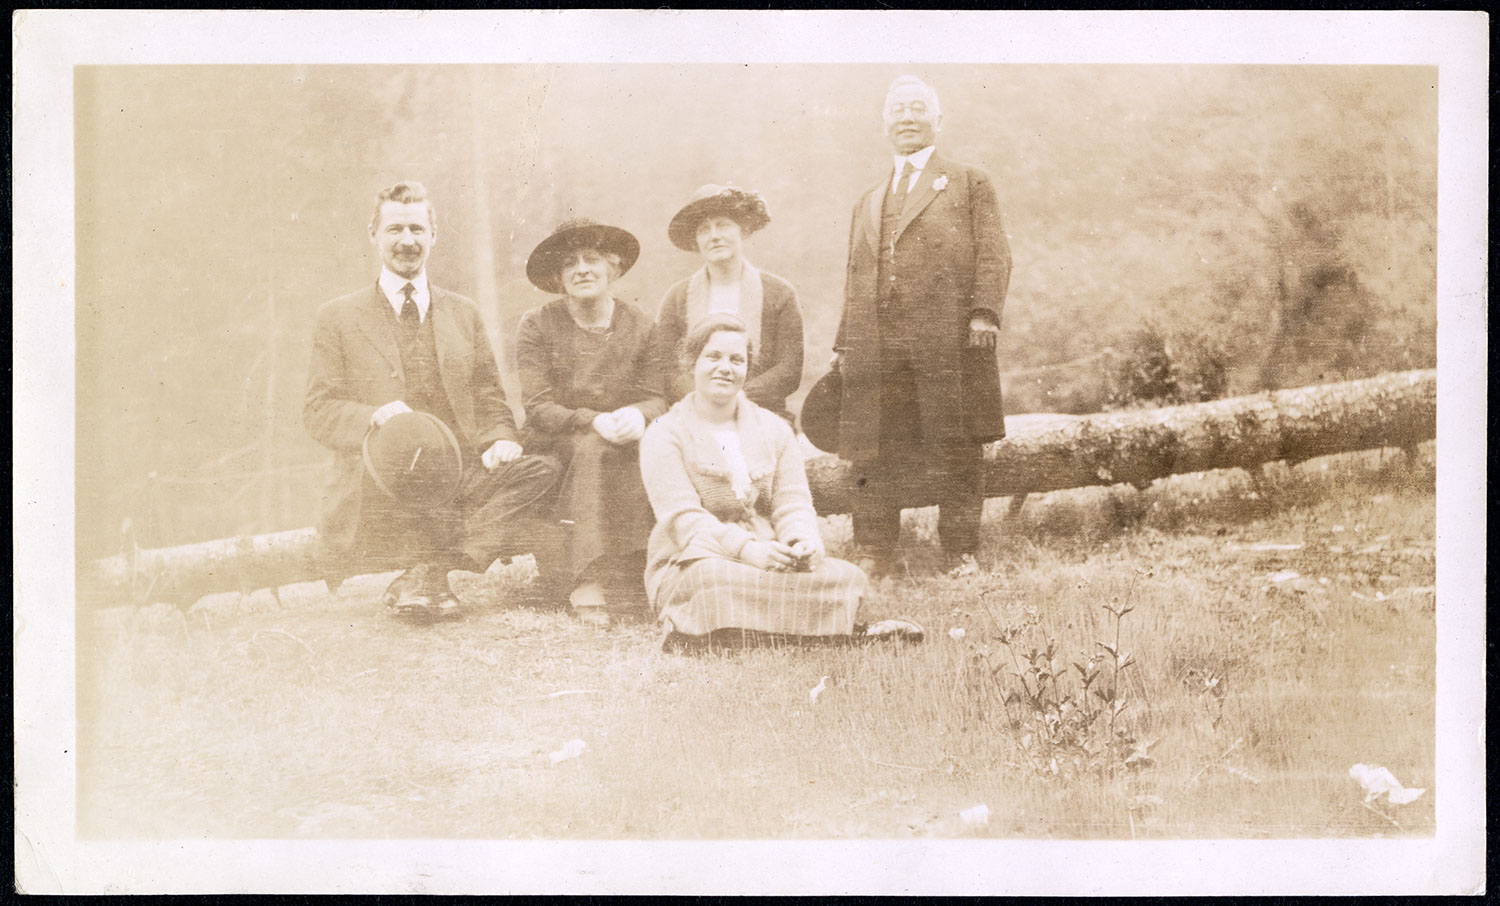 Dr. S.S. Osterhout and church staff in forest setting